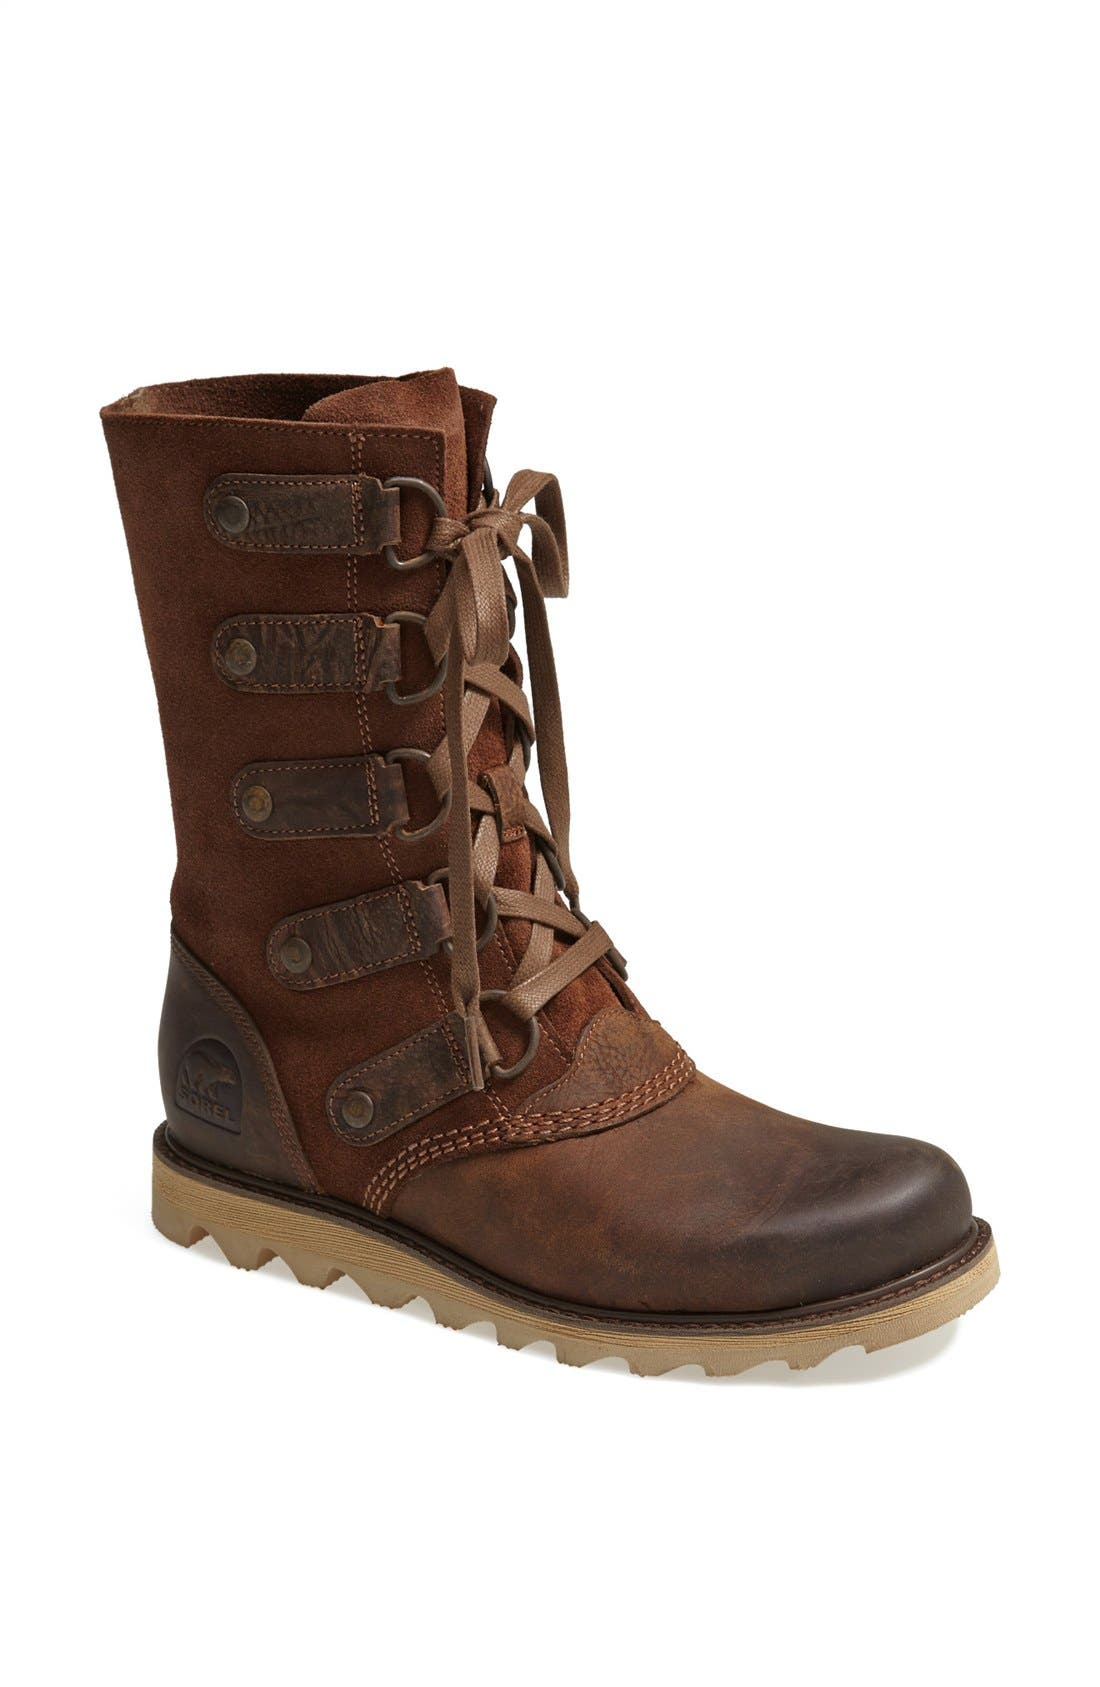 Alternate Image 1 Selected - SOREL 'Scotia' Lace-Up Waterproof Leather Boot (Women)